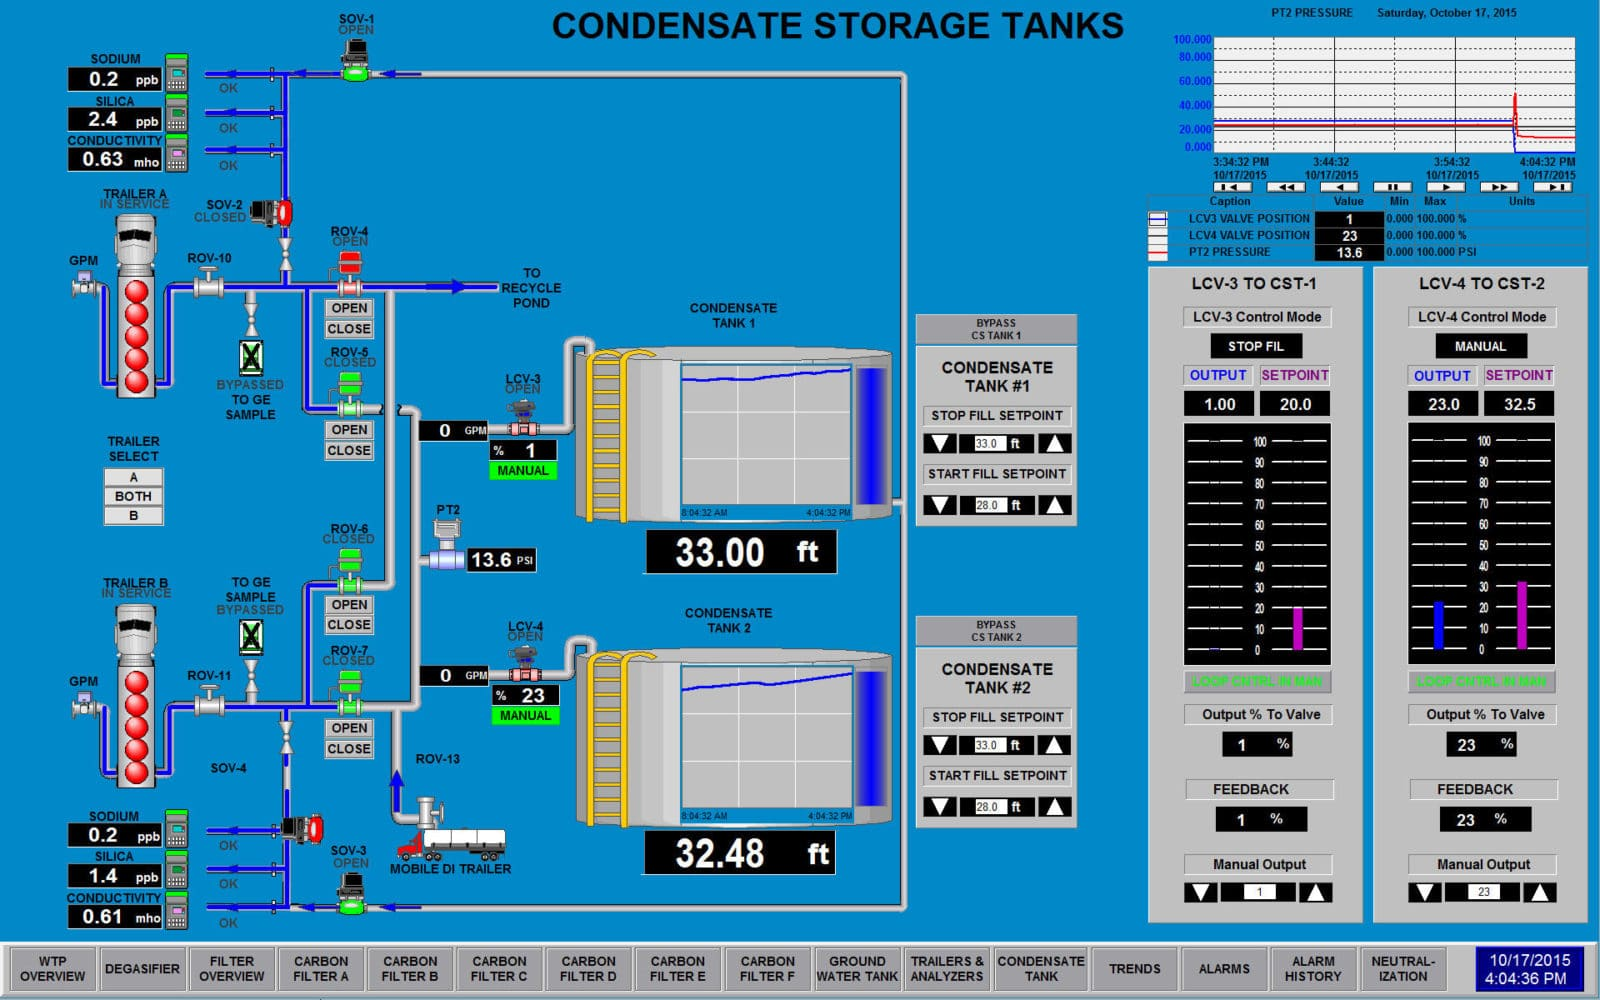 CONDENSATE STORAGE TANKS